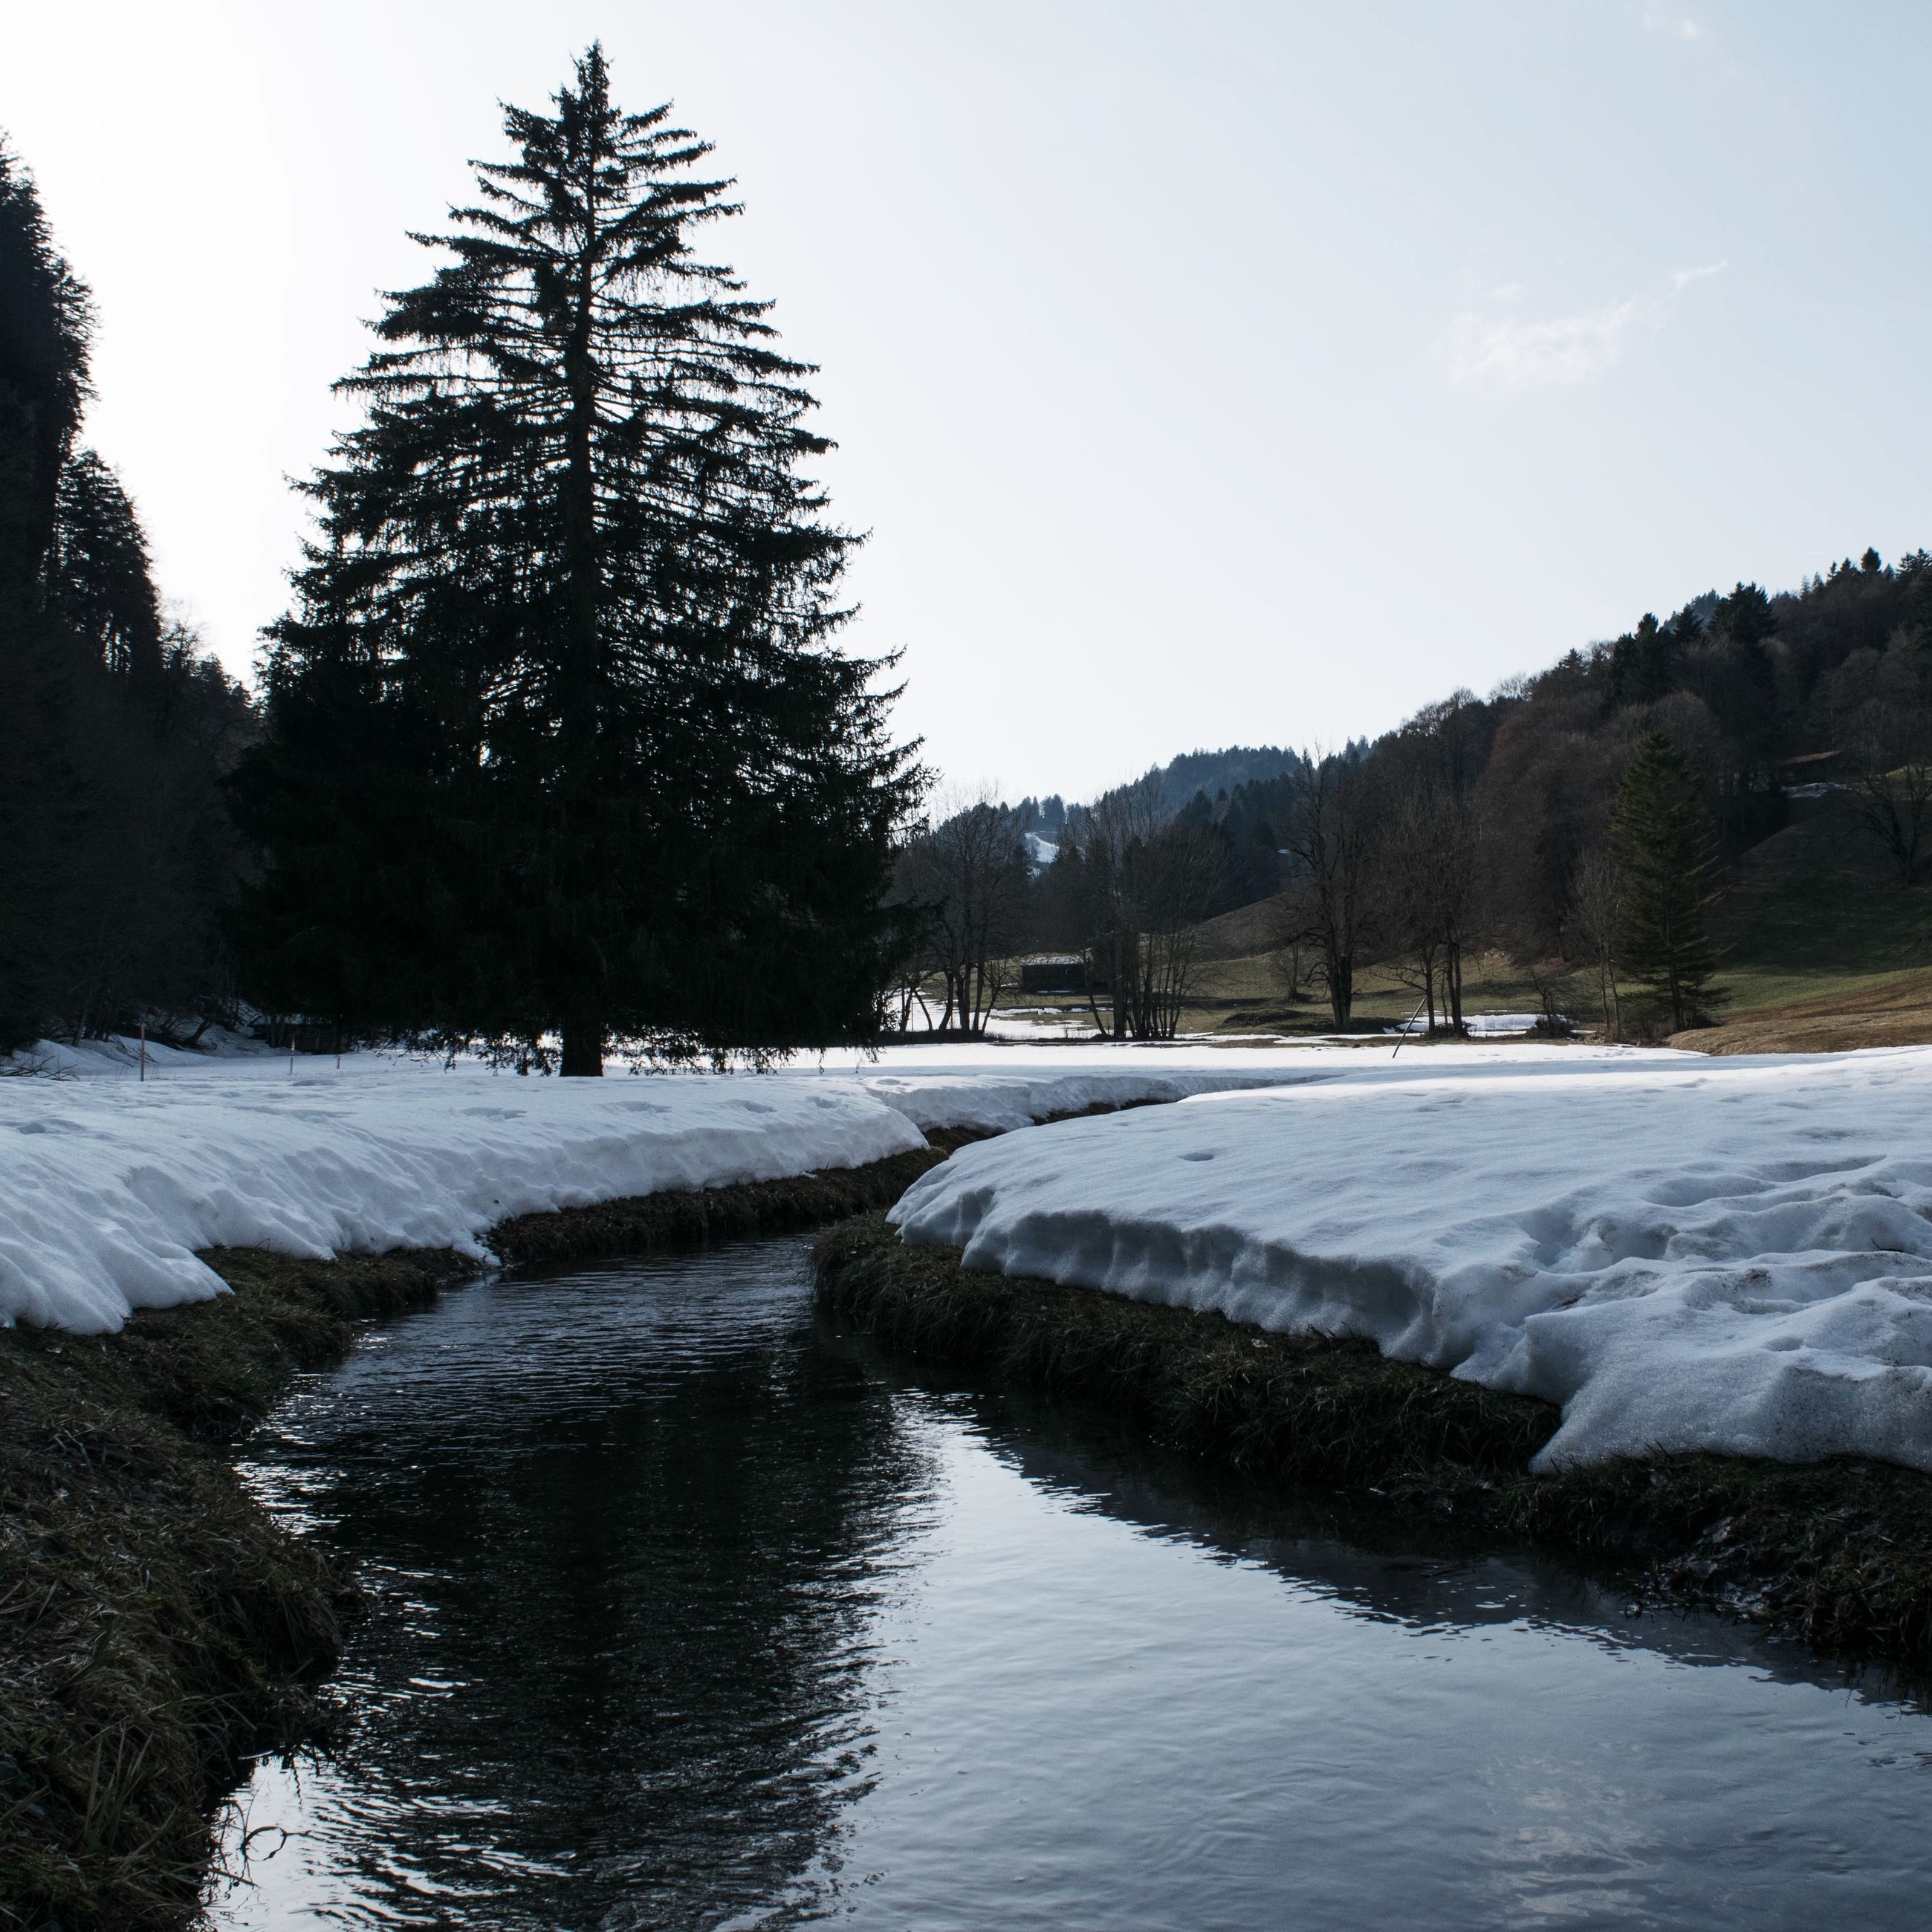 tree, snow, winter, cold temperature, water, tranquil scene, tranquility, scenics, beauty in nature, nature, season, clear sky, sky, river, landscape, lake, waterfront, frozen, day, mountain